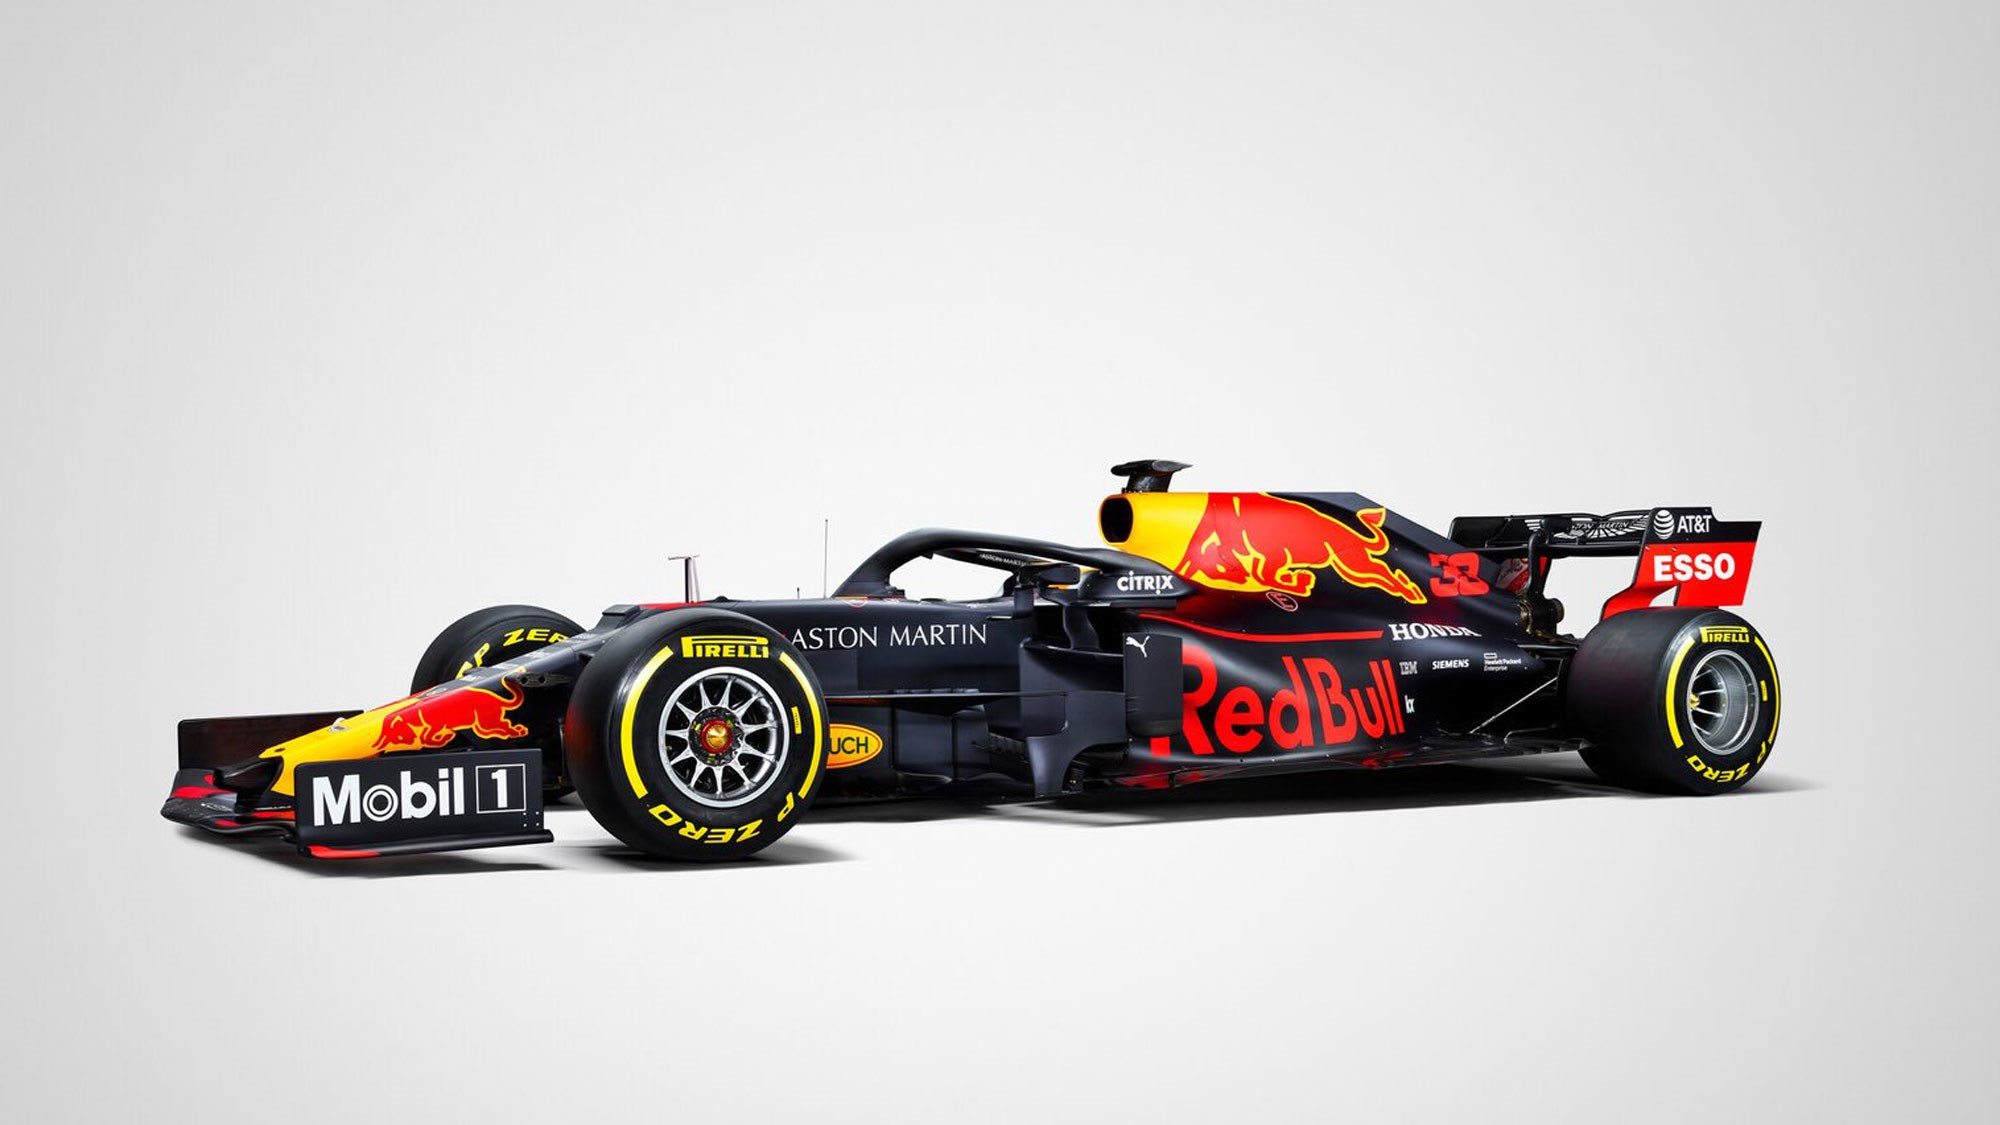 F1 2019 All The New Cars And Drivers Revealed